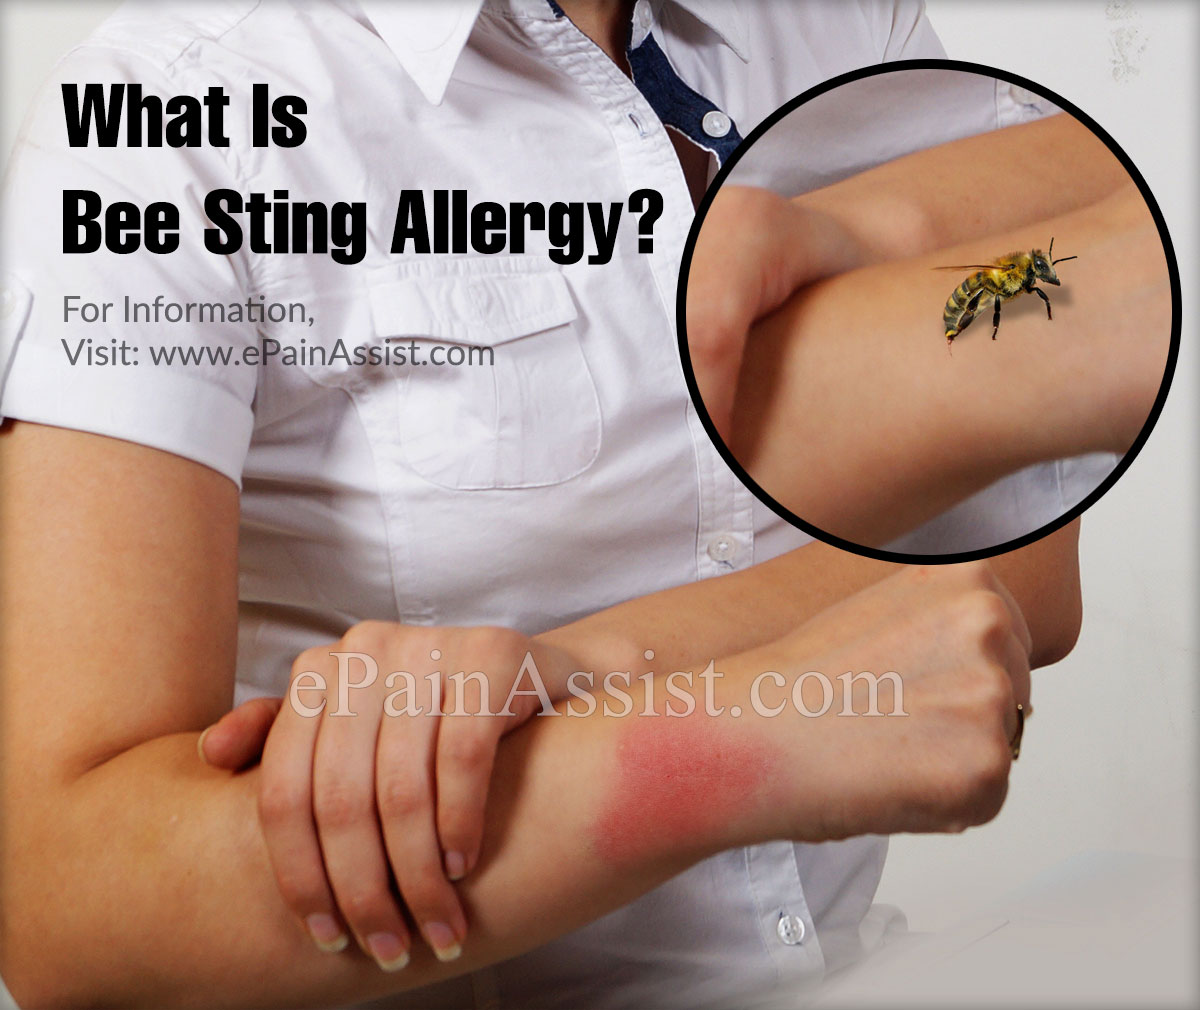 What is a Bee Sting Allergy & How is it Treated?